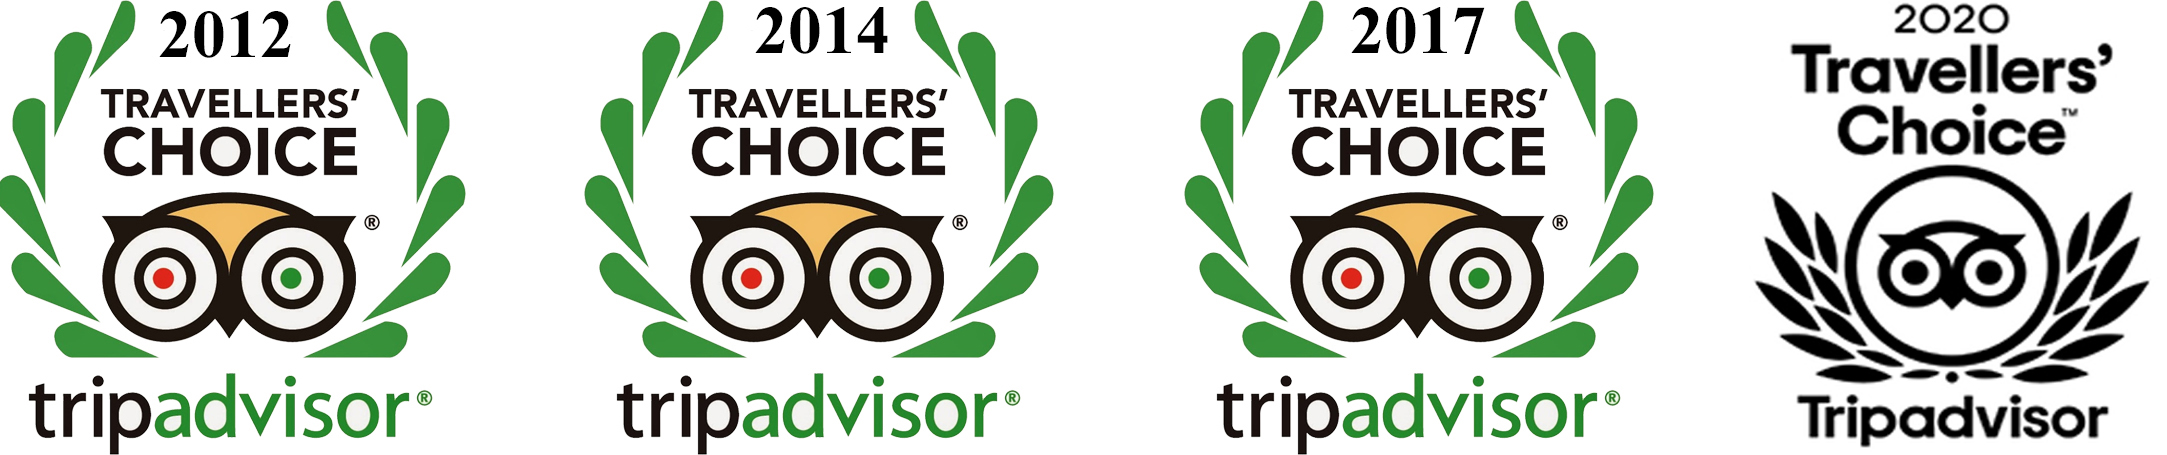 The LimeTree Hotel TripAdvisor Awards